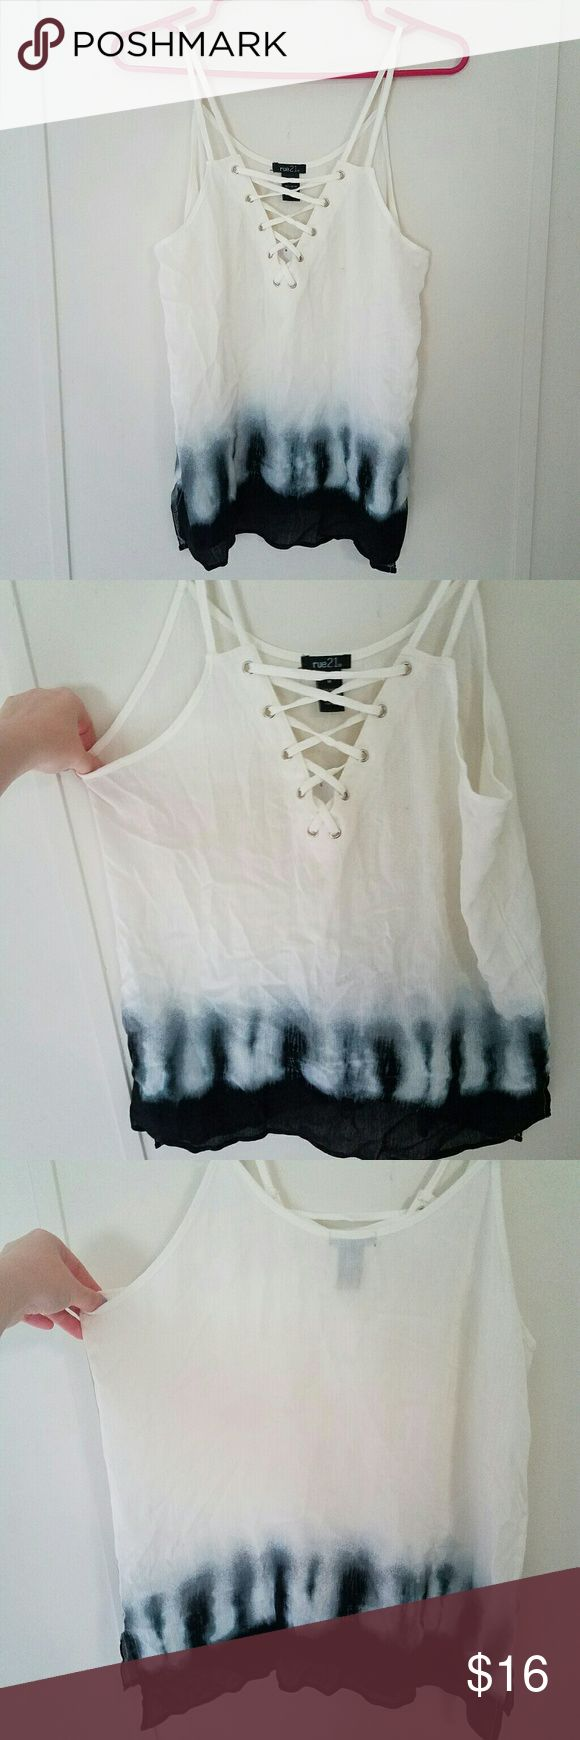 NWT! Rue 21 Lace Up Tie Dye Tank Top NEW Rue 21 gauzy top with adjustable straps. White with black tie dye design & side slits. Adjustable front! Pull down string on inside & knot it to make it more or less open. Never worn. 2 flaws (last 3 pics). 1st is tiny pink dot on front. Looks like a pen mark, might come out when washed, but not very noticeable. I believe it was bought this way. 2nd is one strap came undone while trying on at adjustment part but has been fixed by tying & still works…